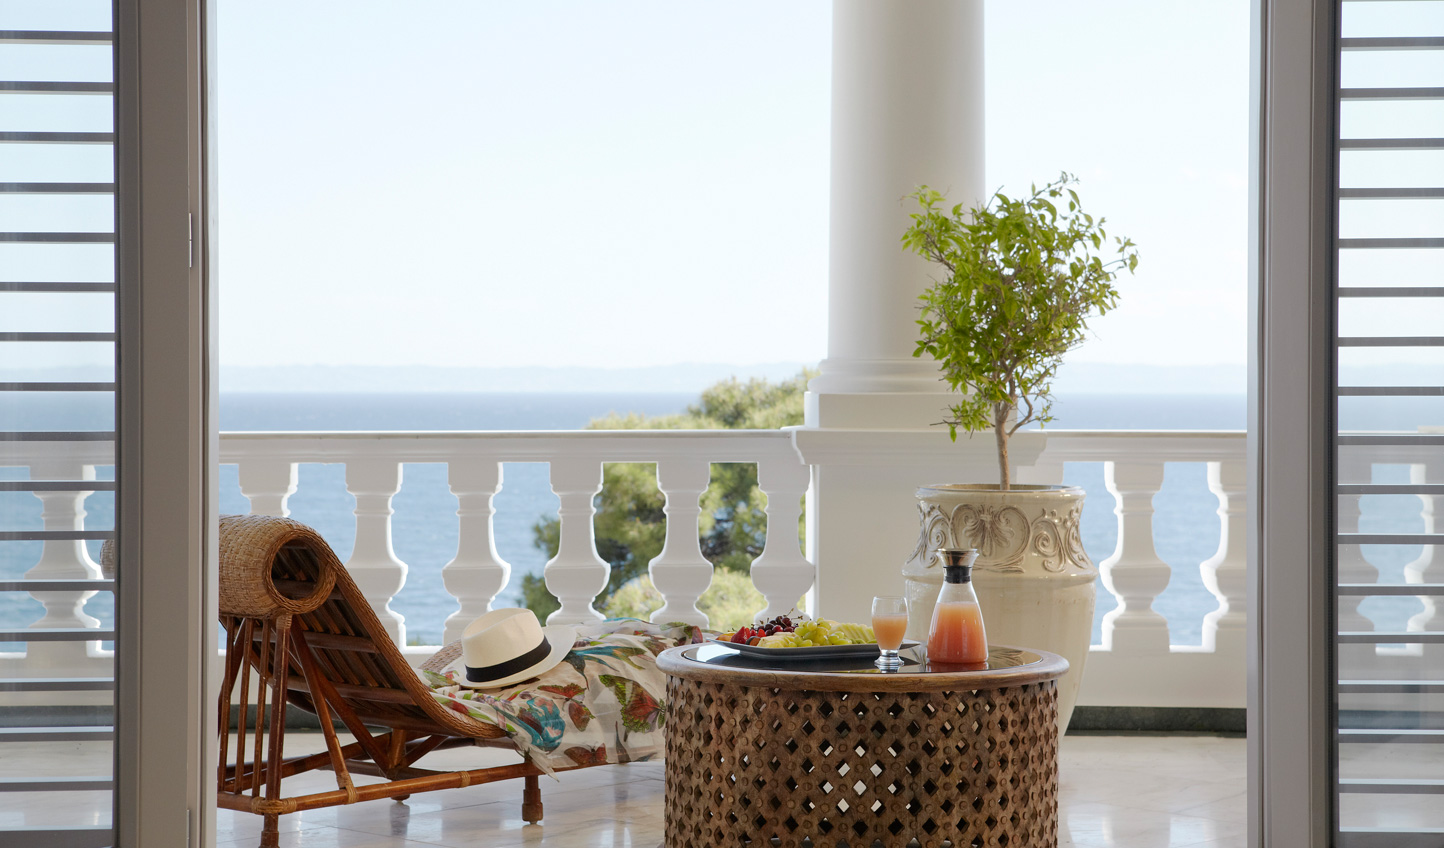 Relax and enjoy the view on your private balcony